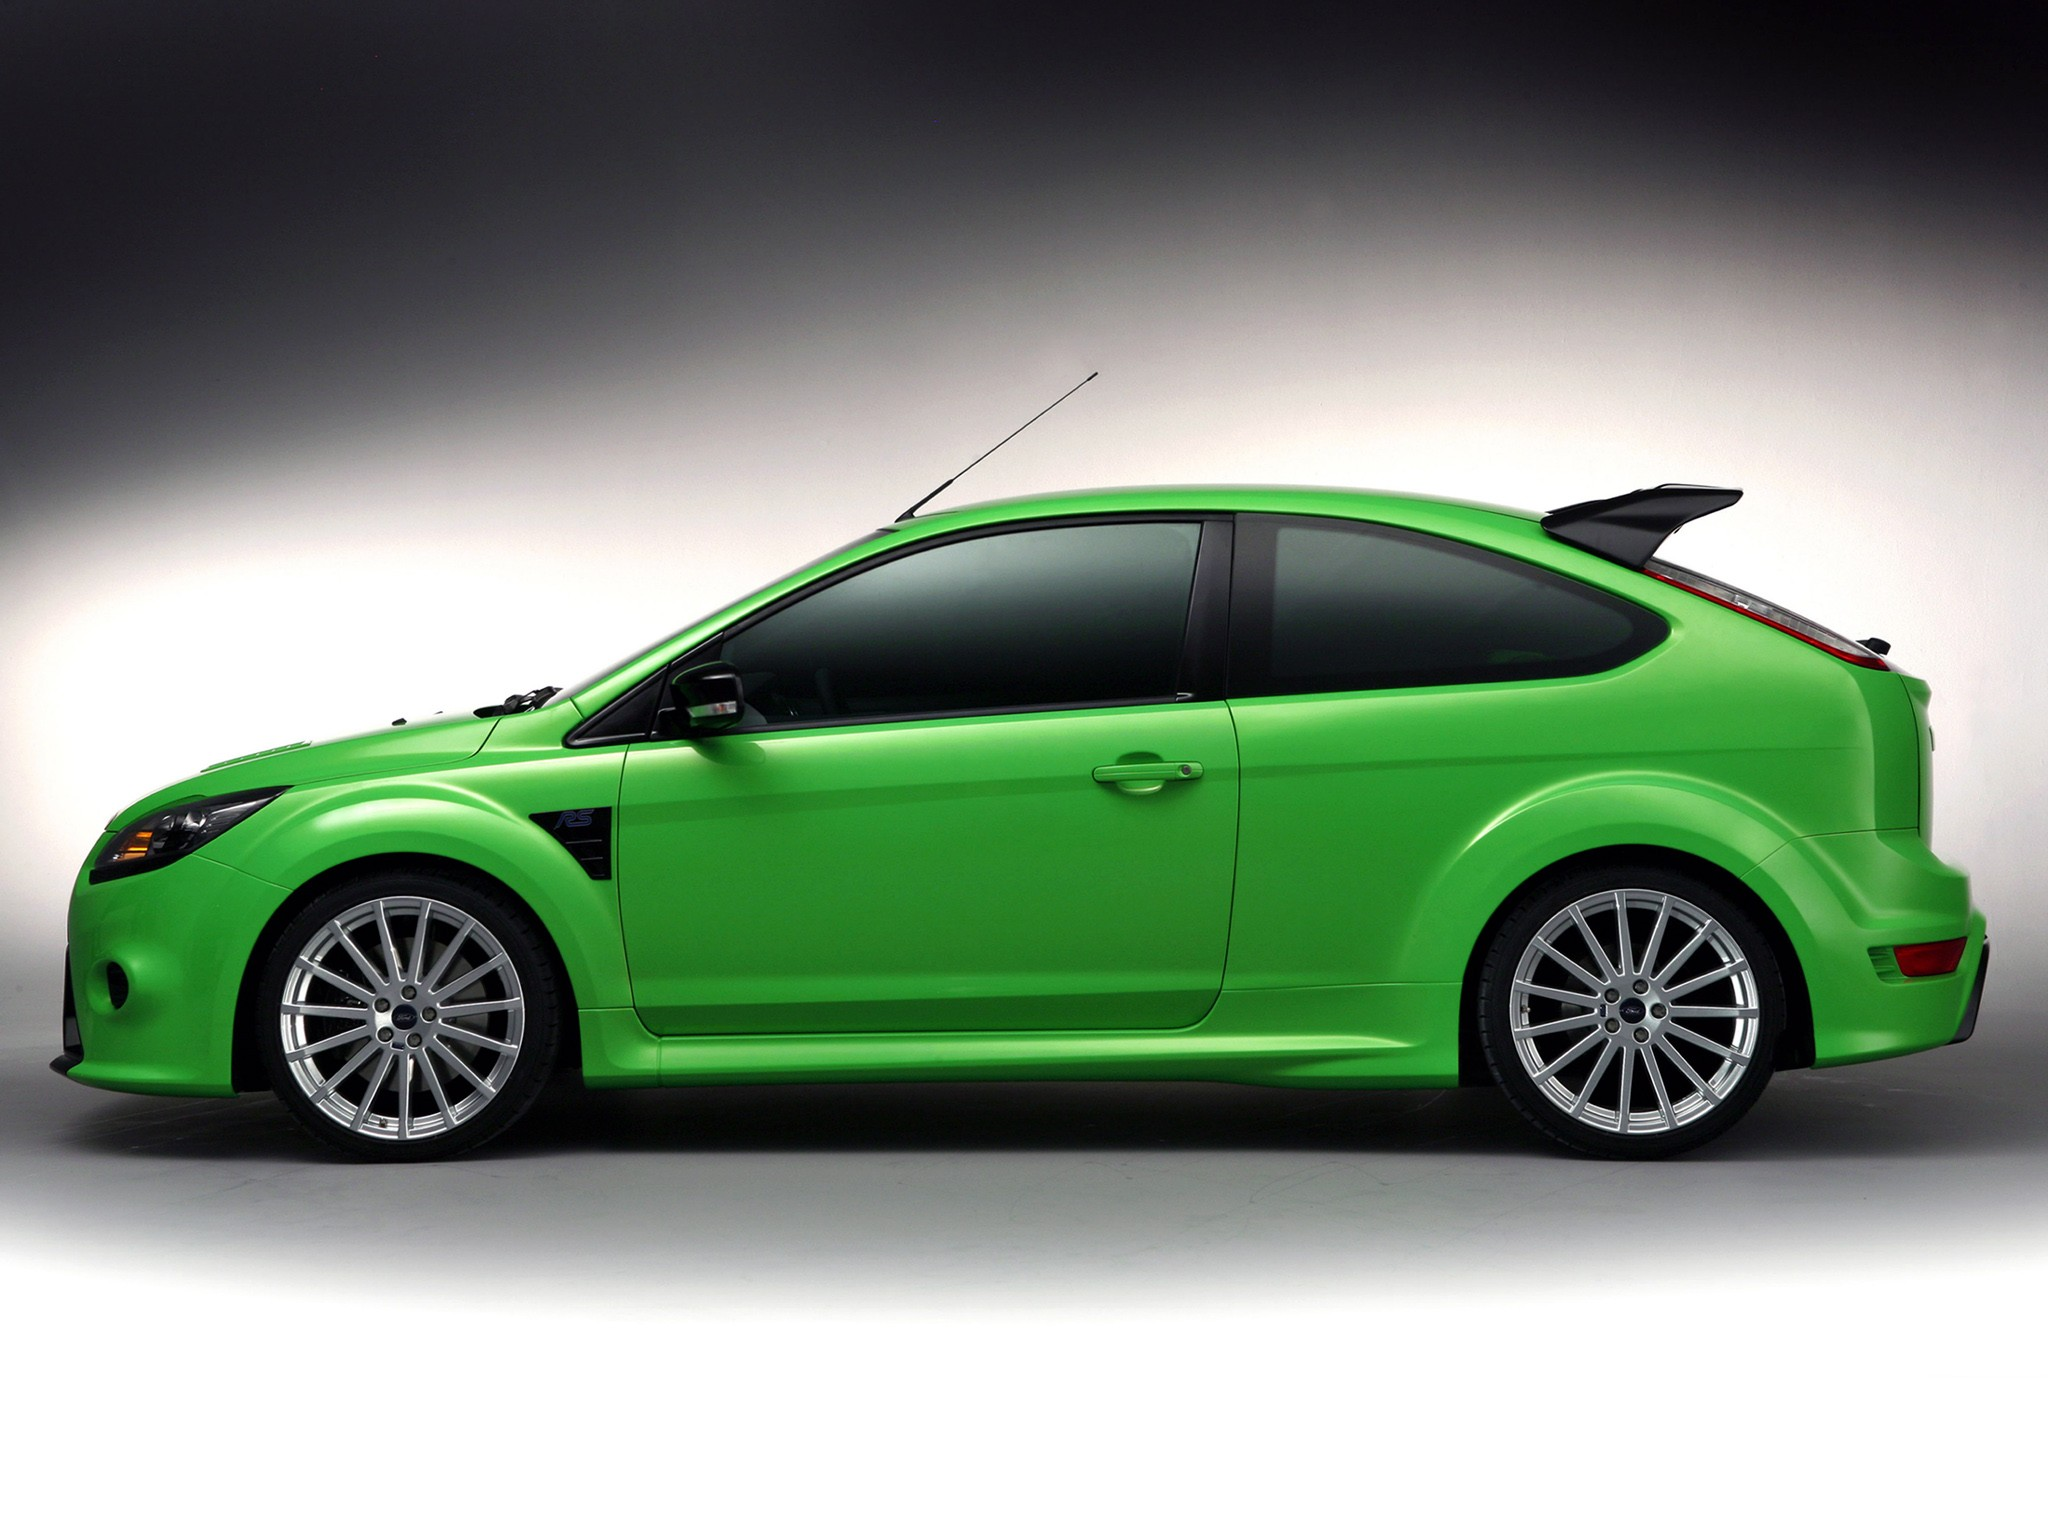 ford focus rs specs 2008 2009 2010 2011 autoevolution. Black Bedroom Furniture Sets. Home Design Ideas